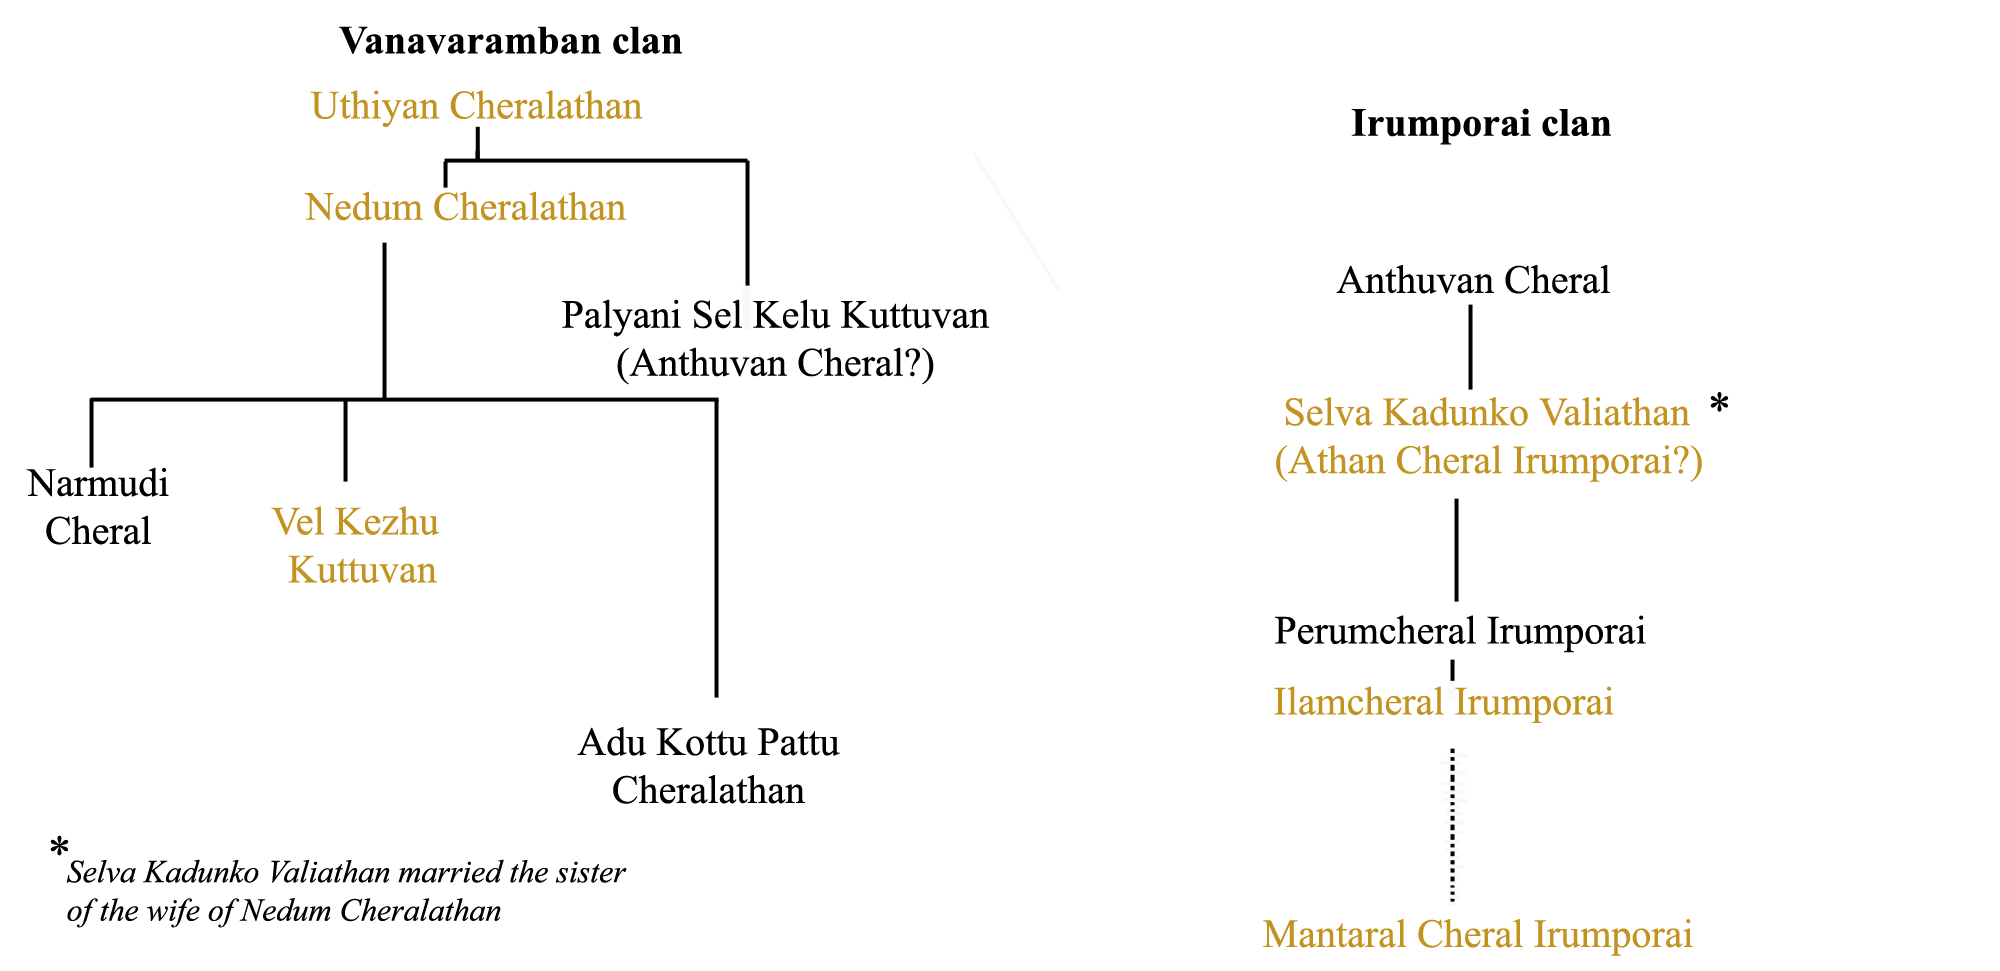 Family tree diagram maker free download edgrafik family tree diagram maker free download chera monarchs family treeg wikimedia commons pooptronica Gallery